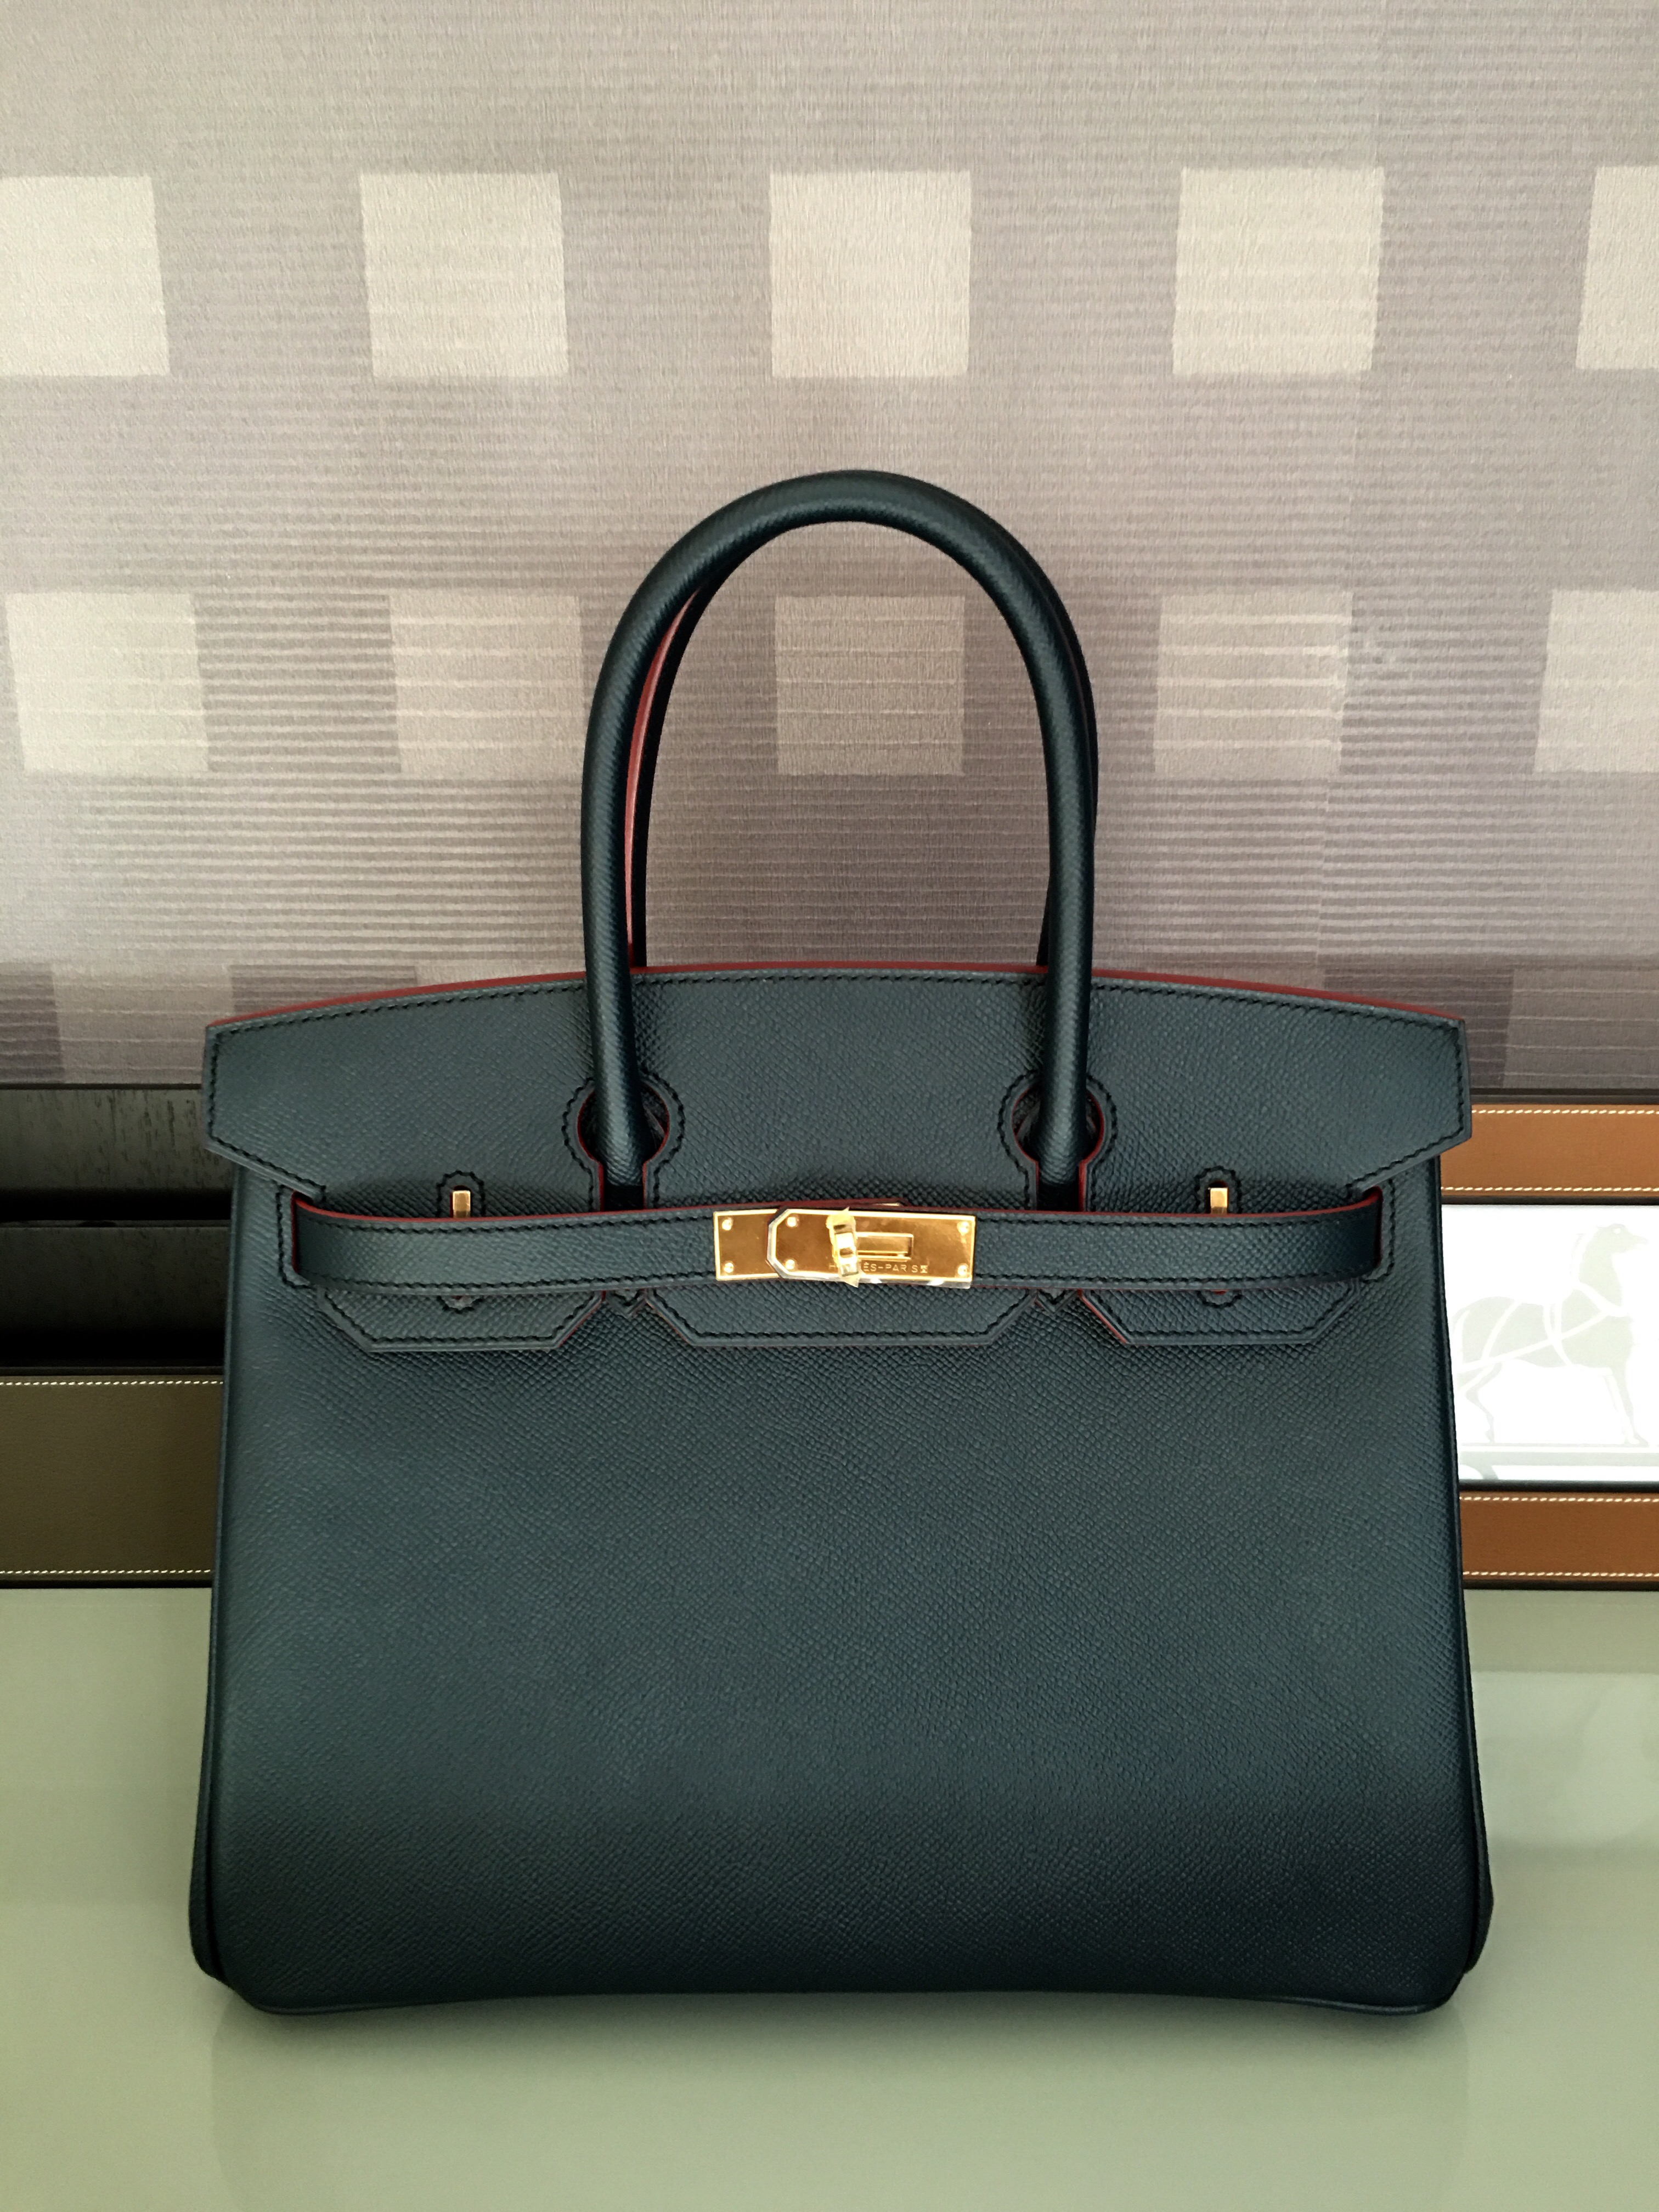 hermes birkin 30 rouge h with gold hardware